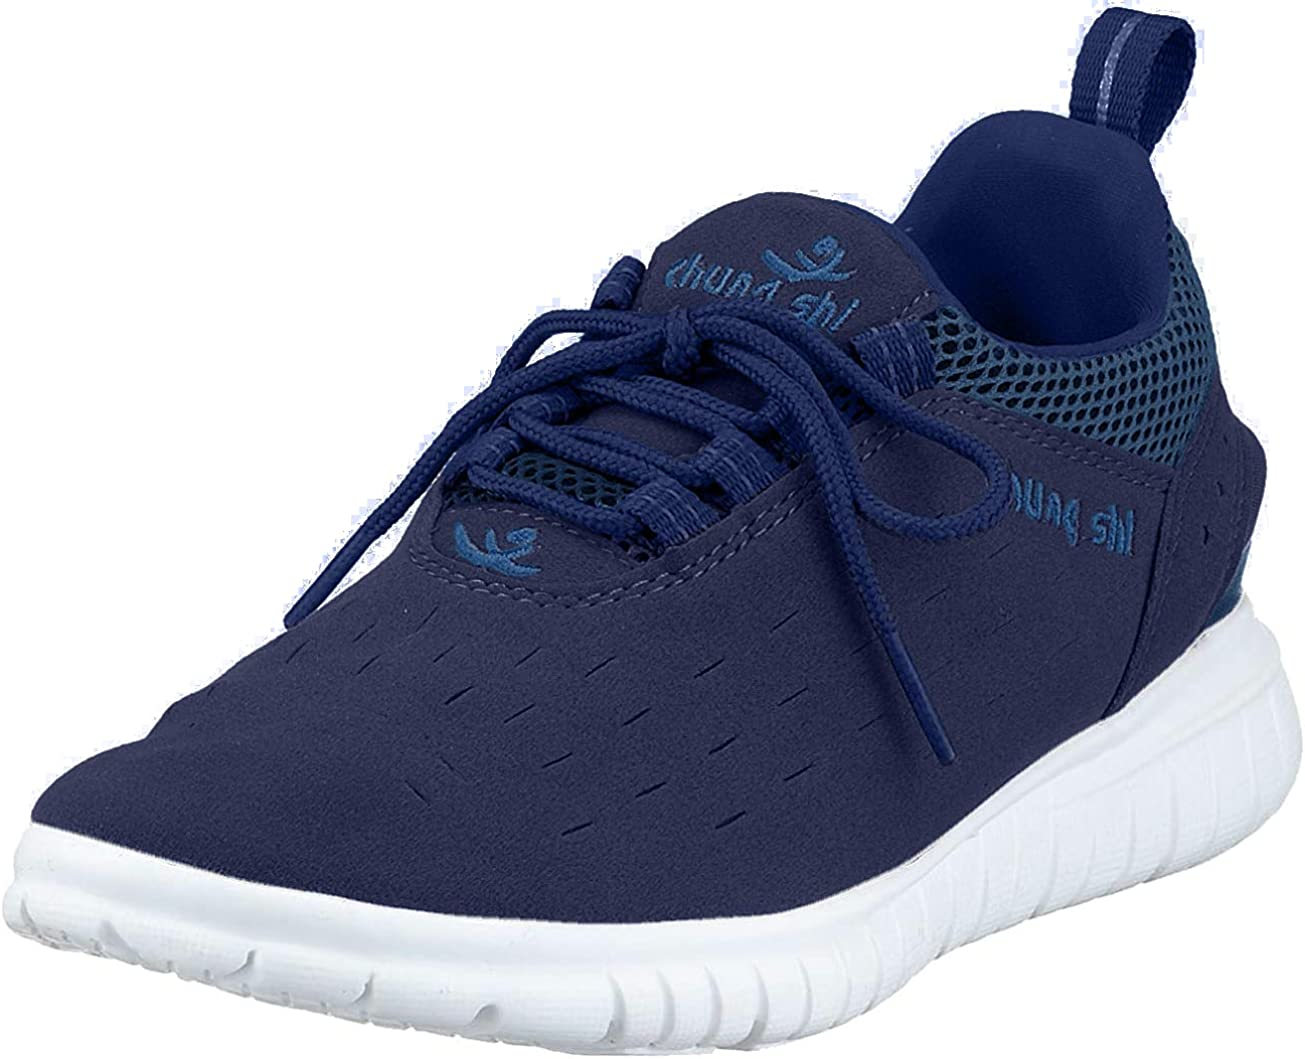 Mail order Chung -Shi- Duflex Sneaker Trainer Lowest price challenge Unisex-